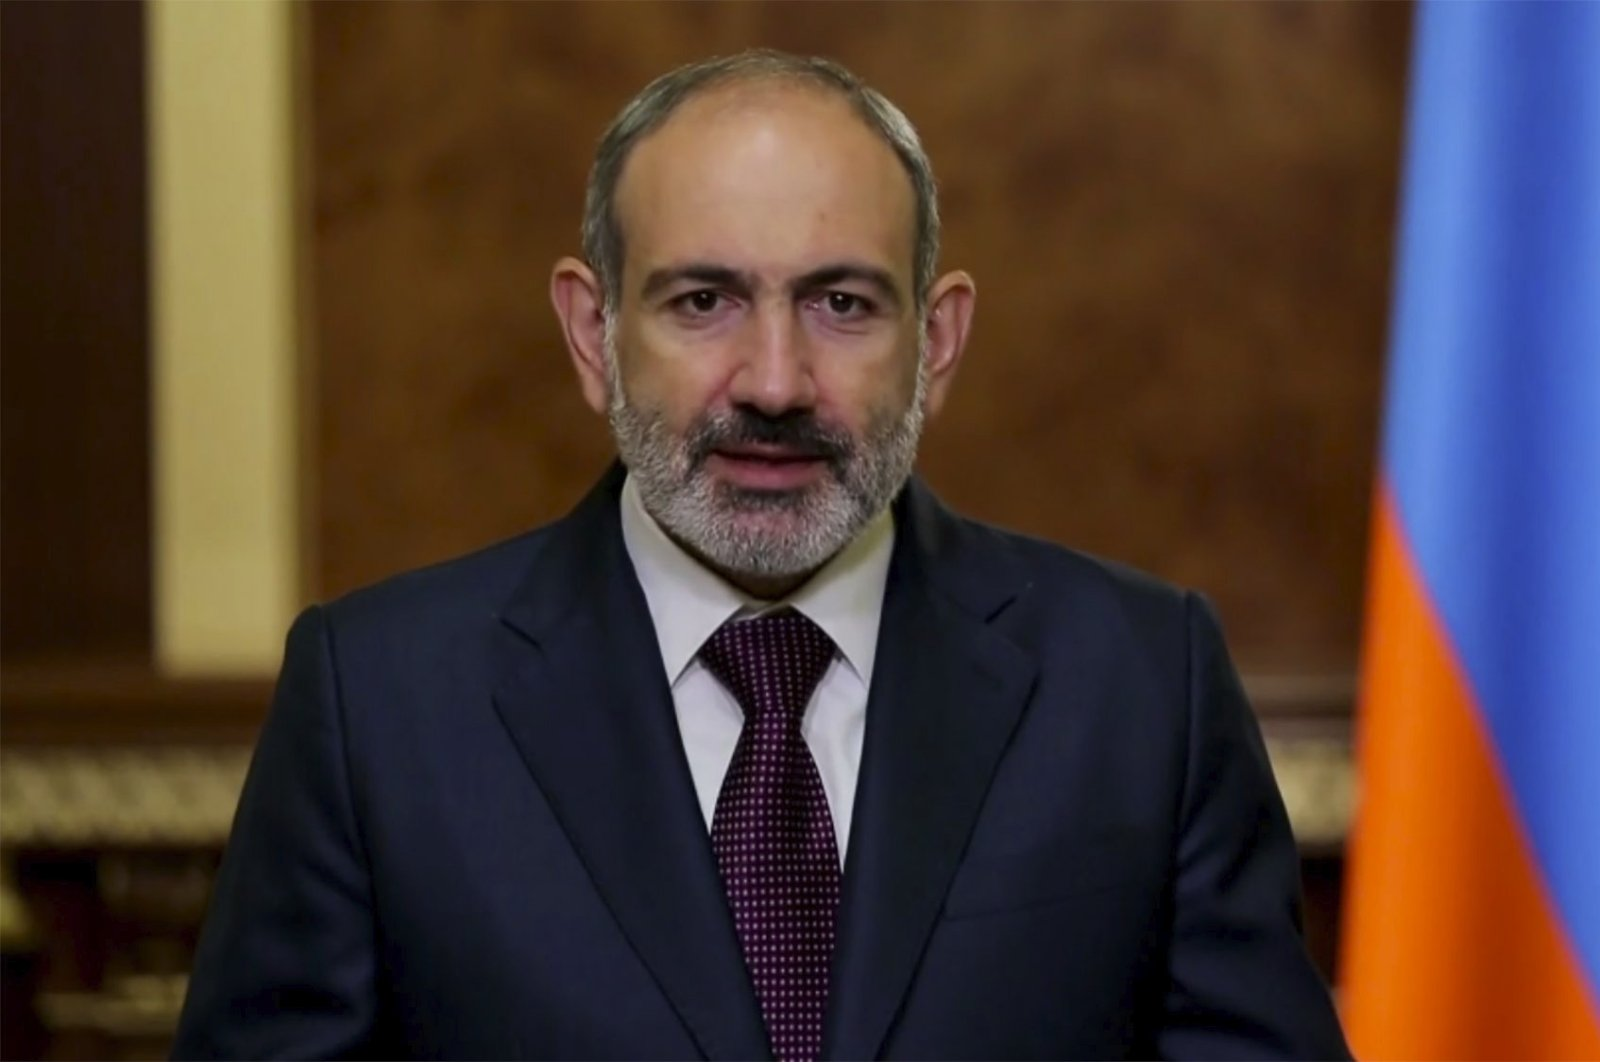 In this image made from UNTV video, Nikol Pashinyan, Prime Minister of Armenia, speaks in a prerecorded message which was played during the 75th session of the U.N. General Assembly, at U.N. headquarters in New York, Sept. 25, 2020. (UNTV via AP)